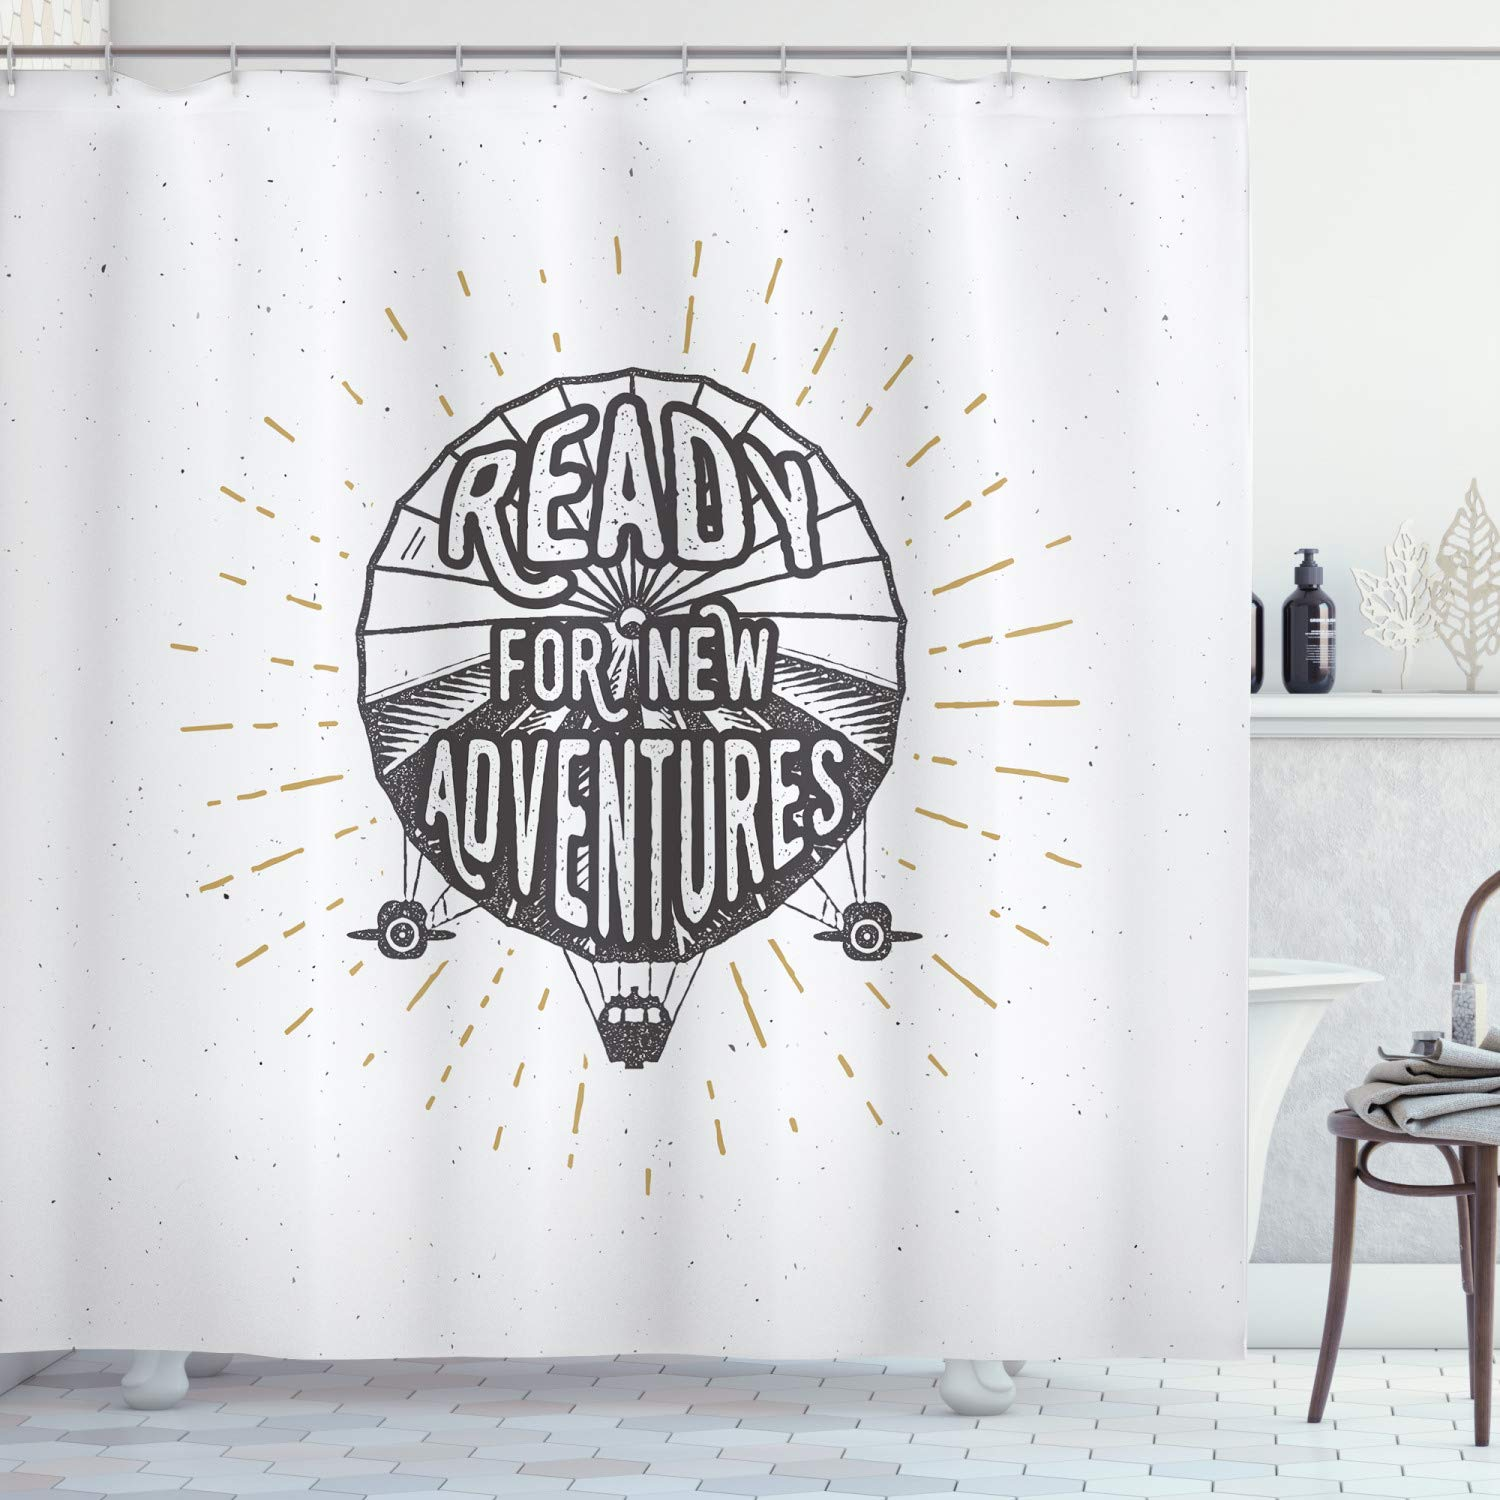 """Ambesonne Saying Shower Curtain, Inspirational Ready for New Adventures Motivational Lettering on Balloon Print, Cloth Fabric Bathroom Decor Set with Hooks, 70"""" Long, Black and White"""